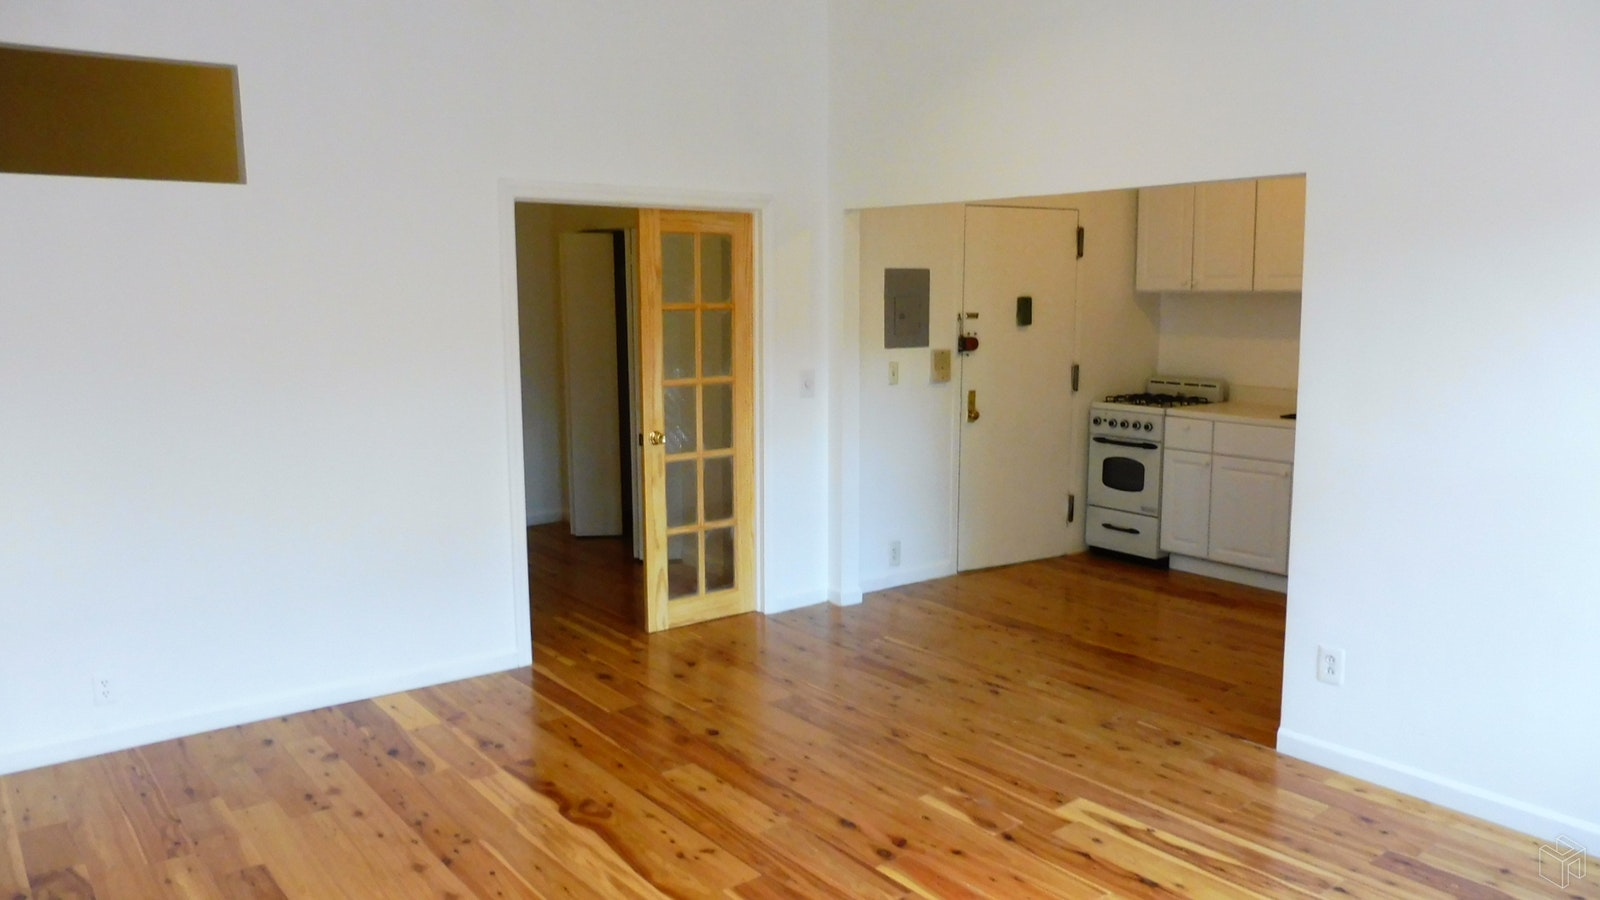 513 East 6th Street, East Village, NYC, 10009, Price Not Disclosed, Rented Property, Halstead Real Estate, Photo 1